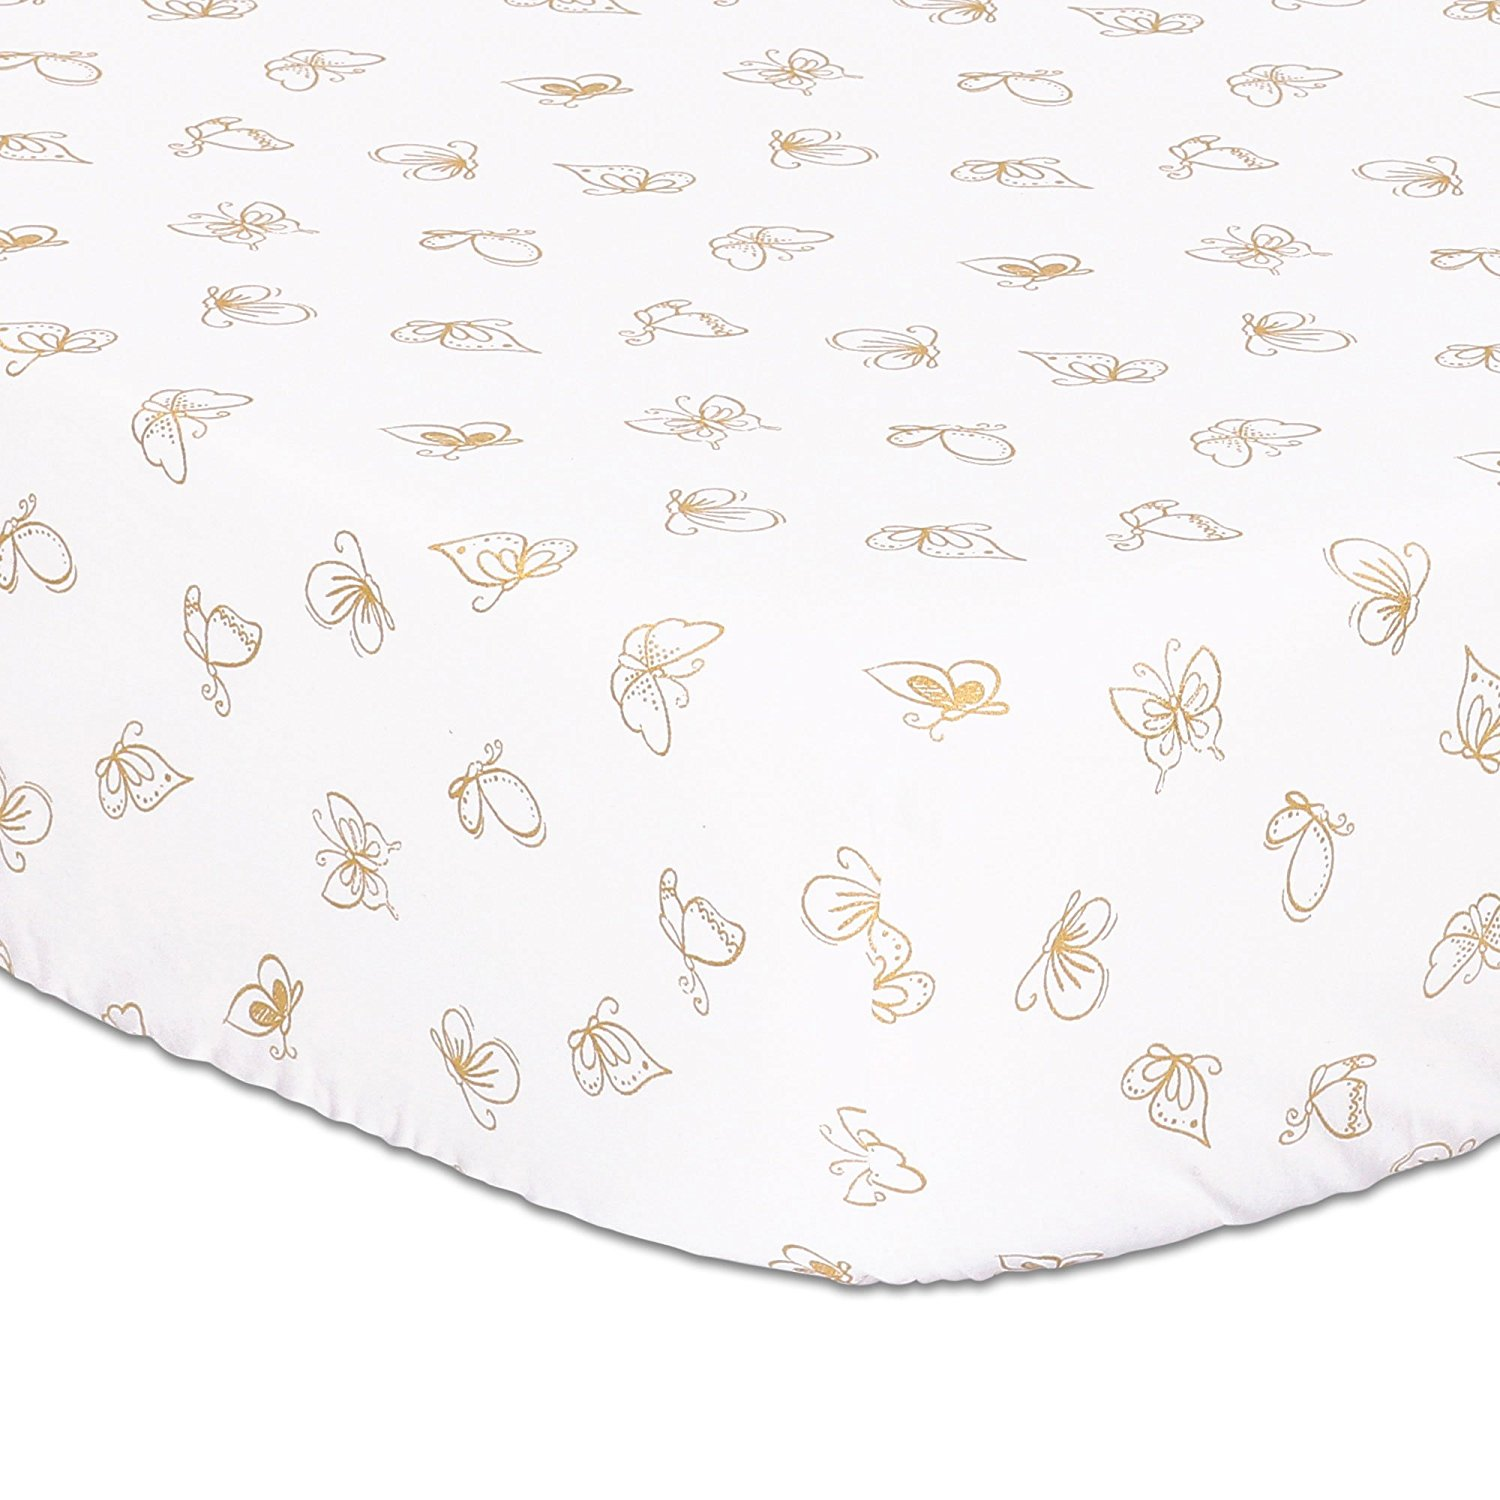 Gold Butterfly Fitted Crib Sheet by, This Peanut Shell Cotton Fitted Crib Sheet is a stylish addition to your baby's nursery with a fun gold butterfly.., By The Peanut Shell Ship from US